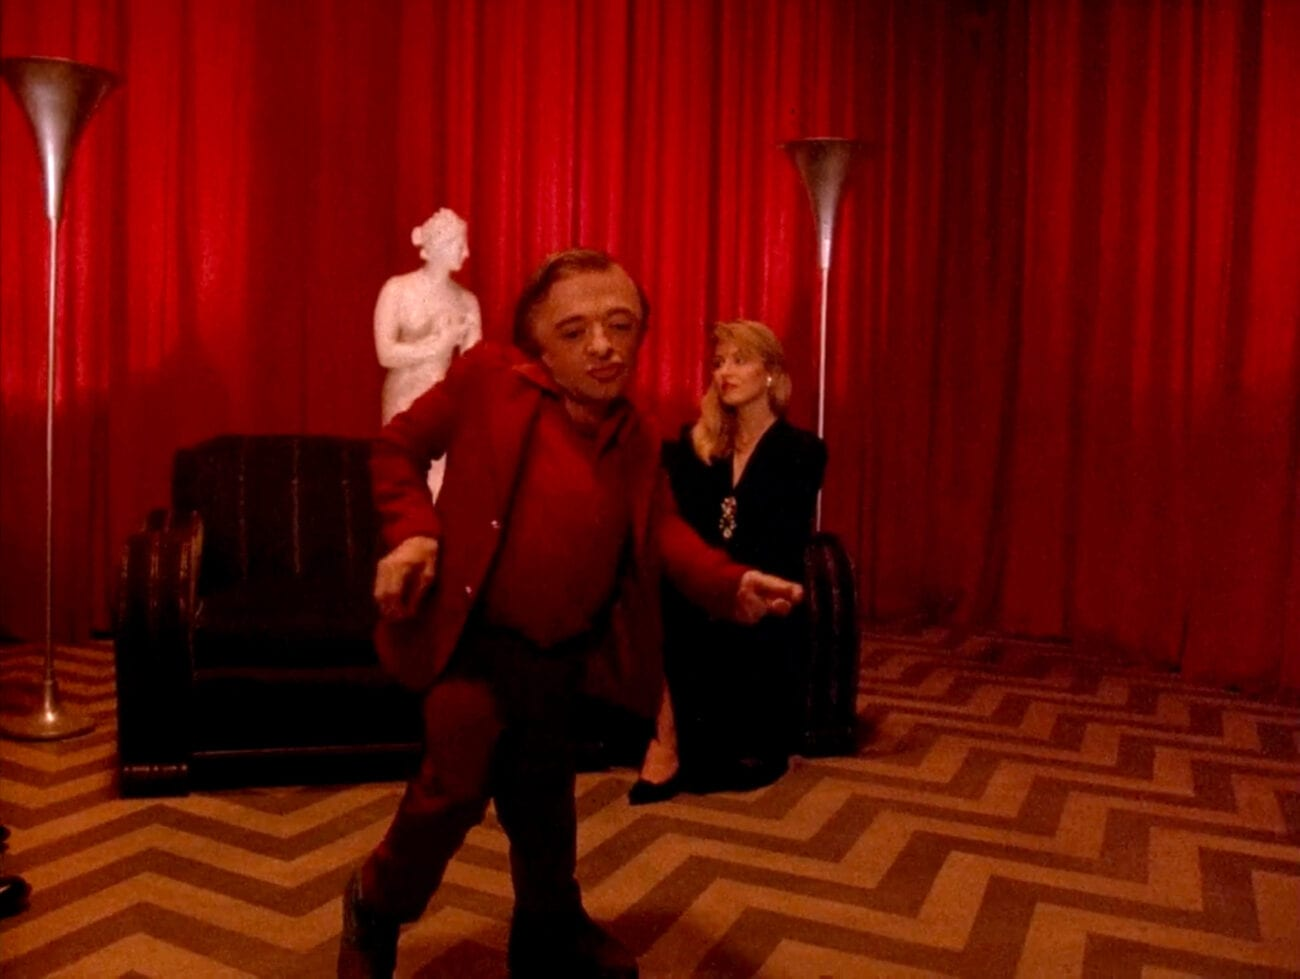 The Dream Man does his dance in the Red Room